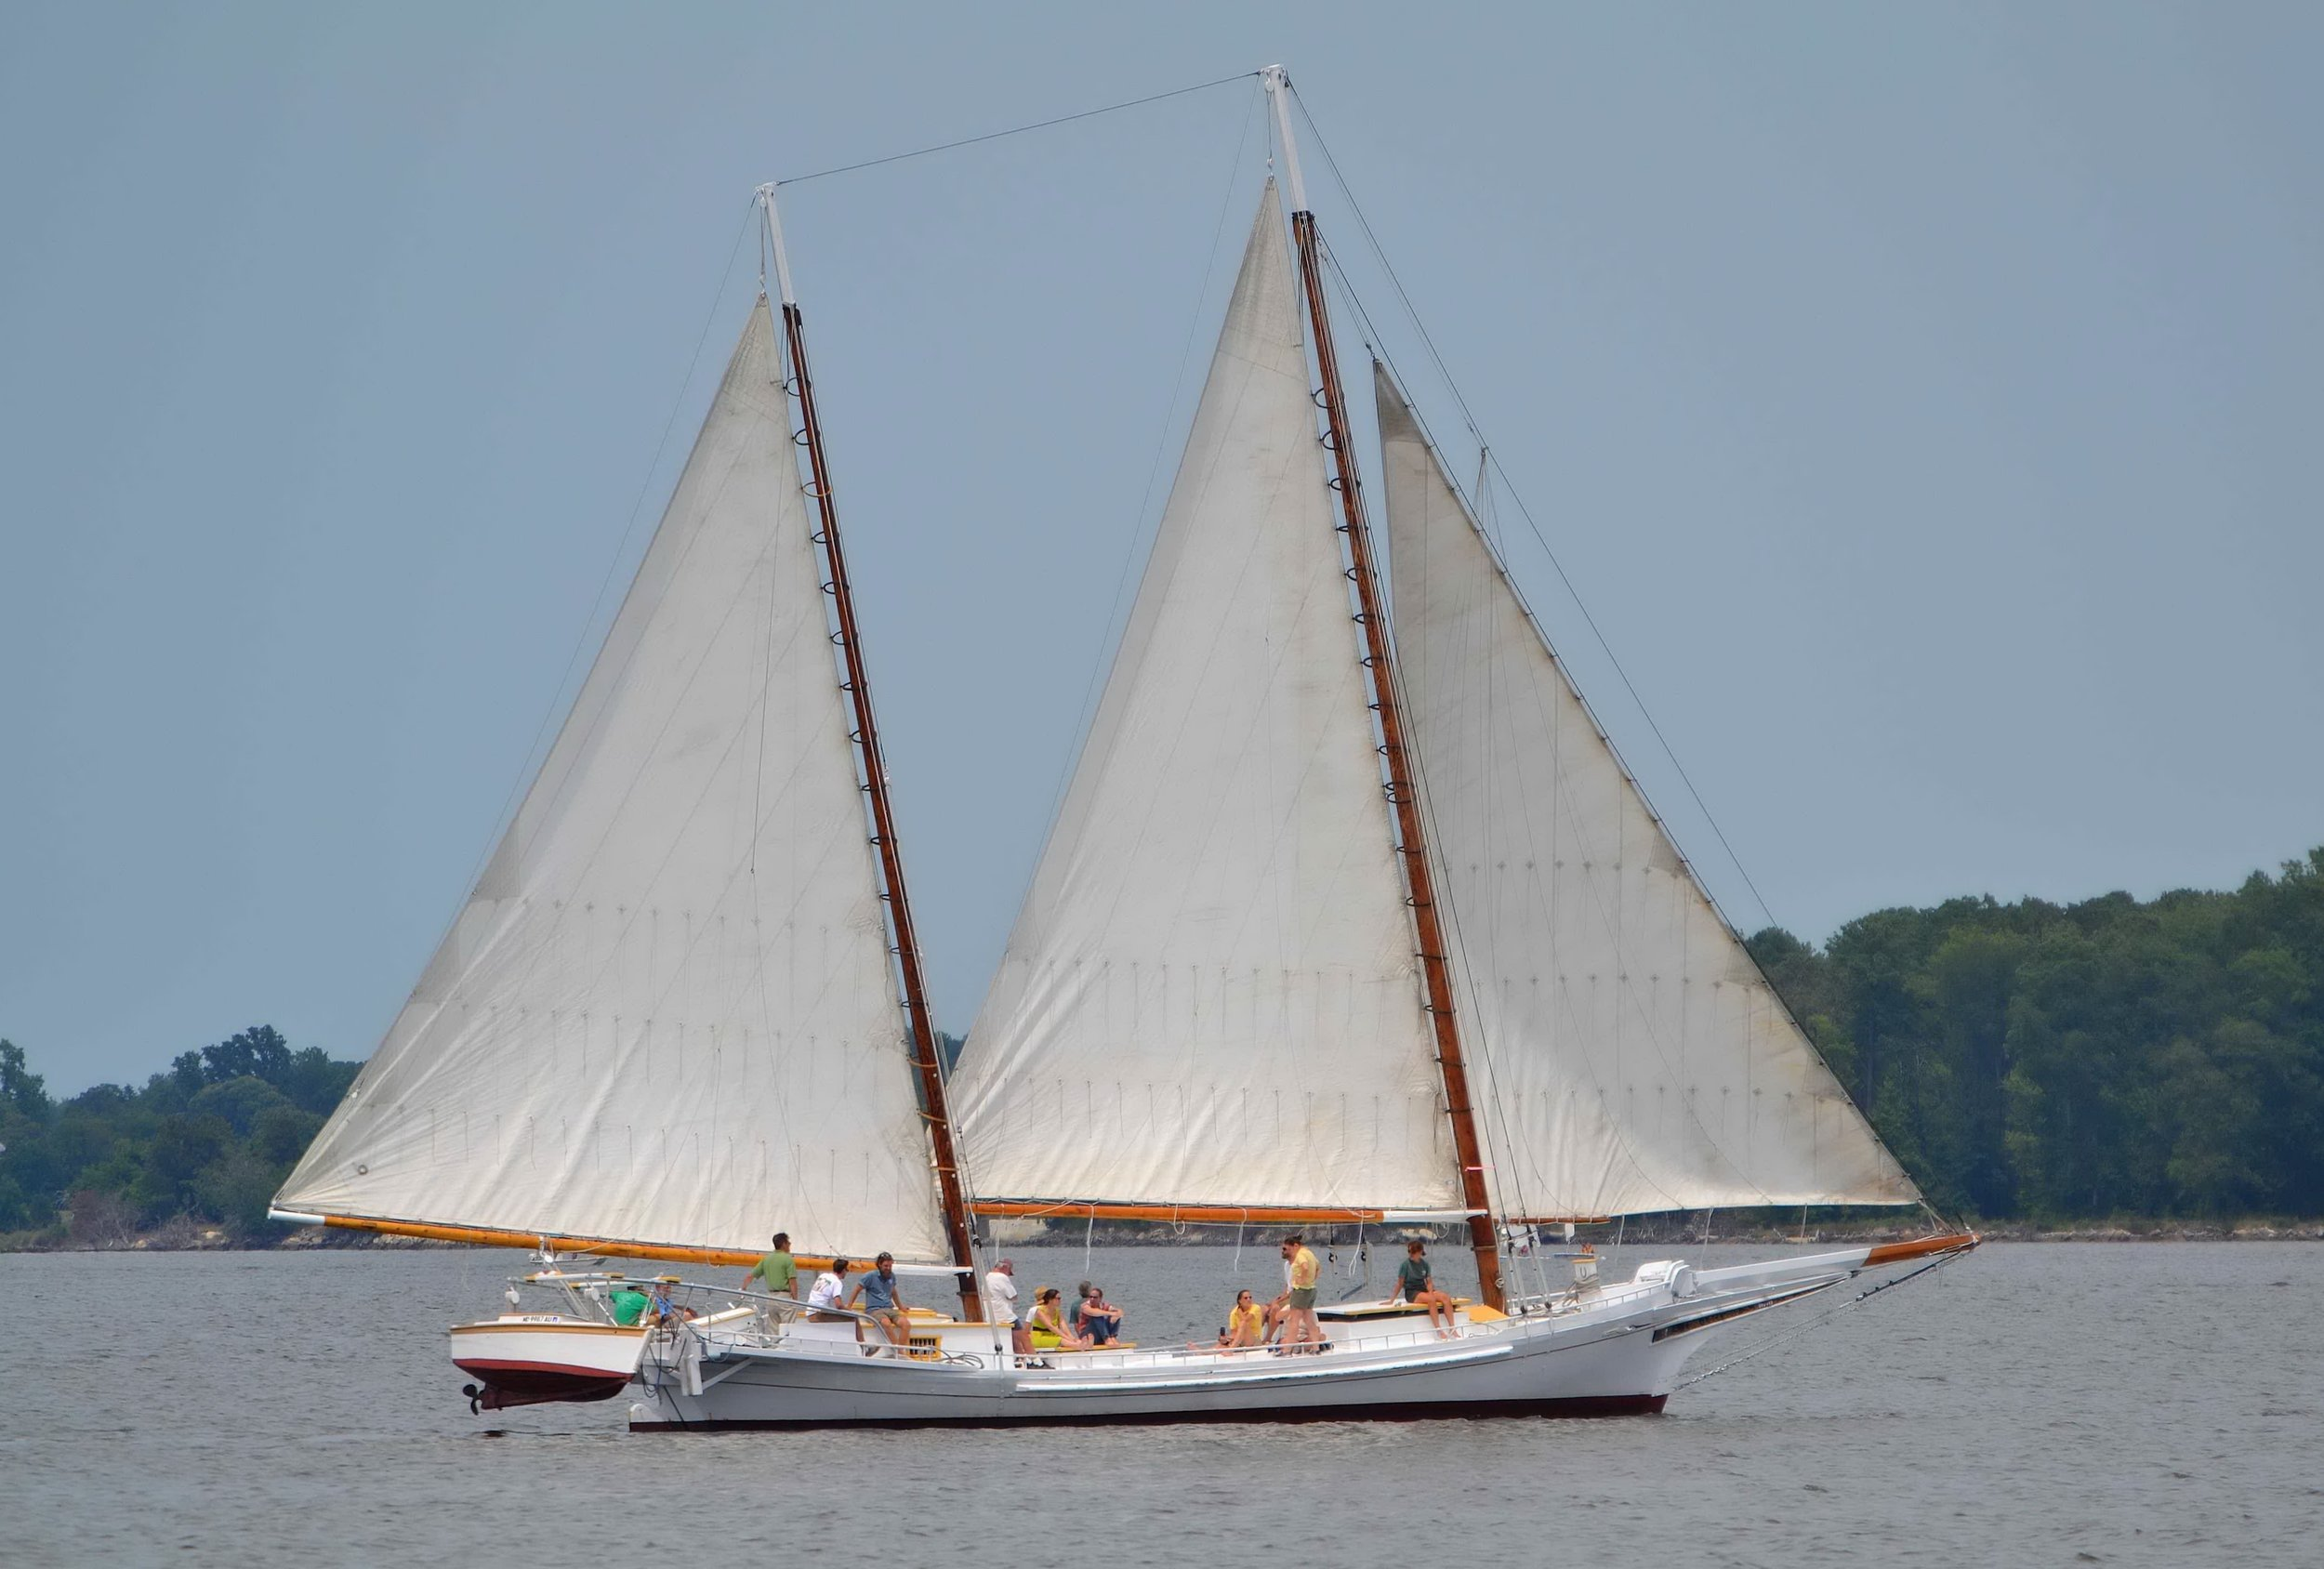 The Chesapeake Bay Maritime Museum's 1889 bugeye  Edna Lockwood  is pictured sailing the Miles River in St. Michaels, Md. The National Historic Landmark underwent a two-year restoration of her nine-log hull from 2016–2018, and will be traveling to numerous ports of call this summer on heritage tour dedicated to educating the public about traditional Bay boatbuilding techniques and the oystering industry past and present.